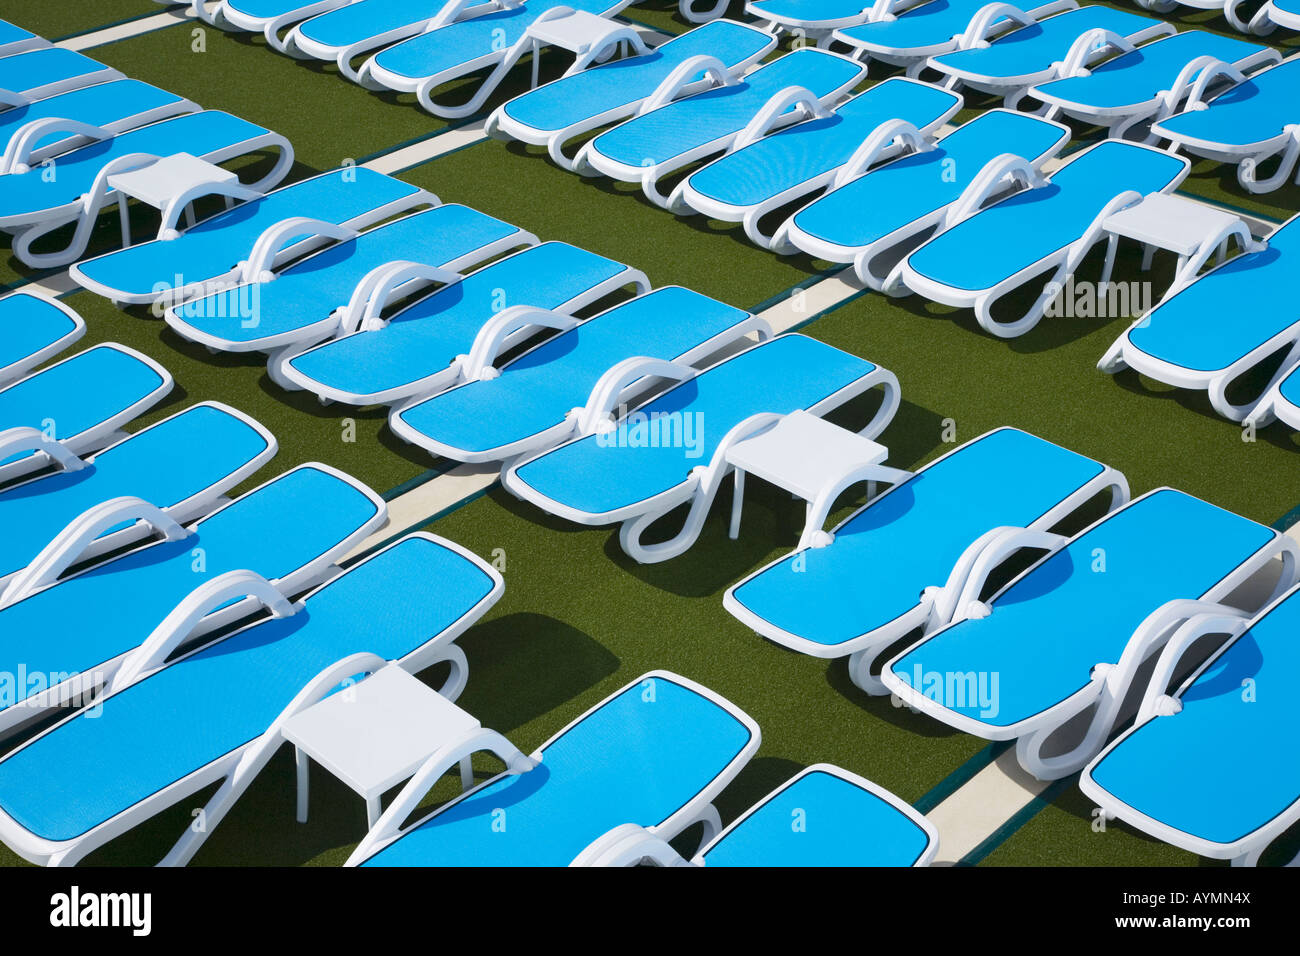 Sun loungers on deck of a Cruise Ship - Stock Image